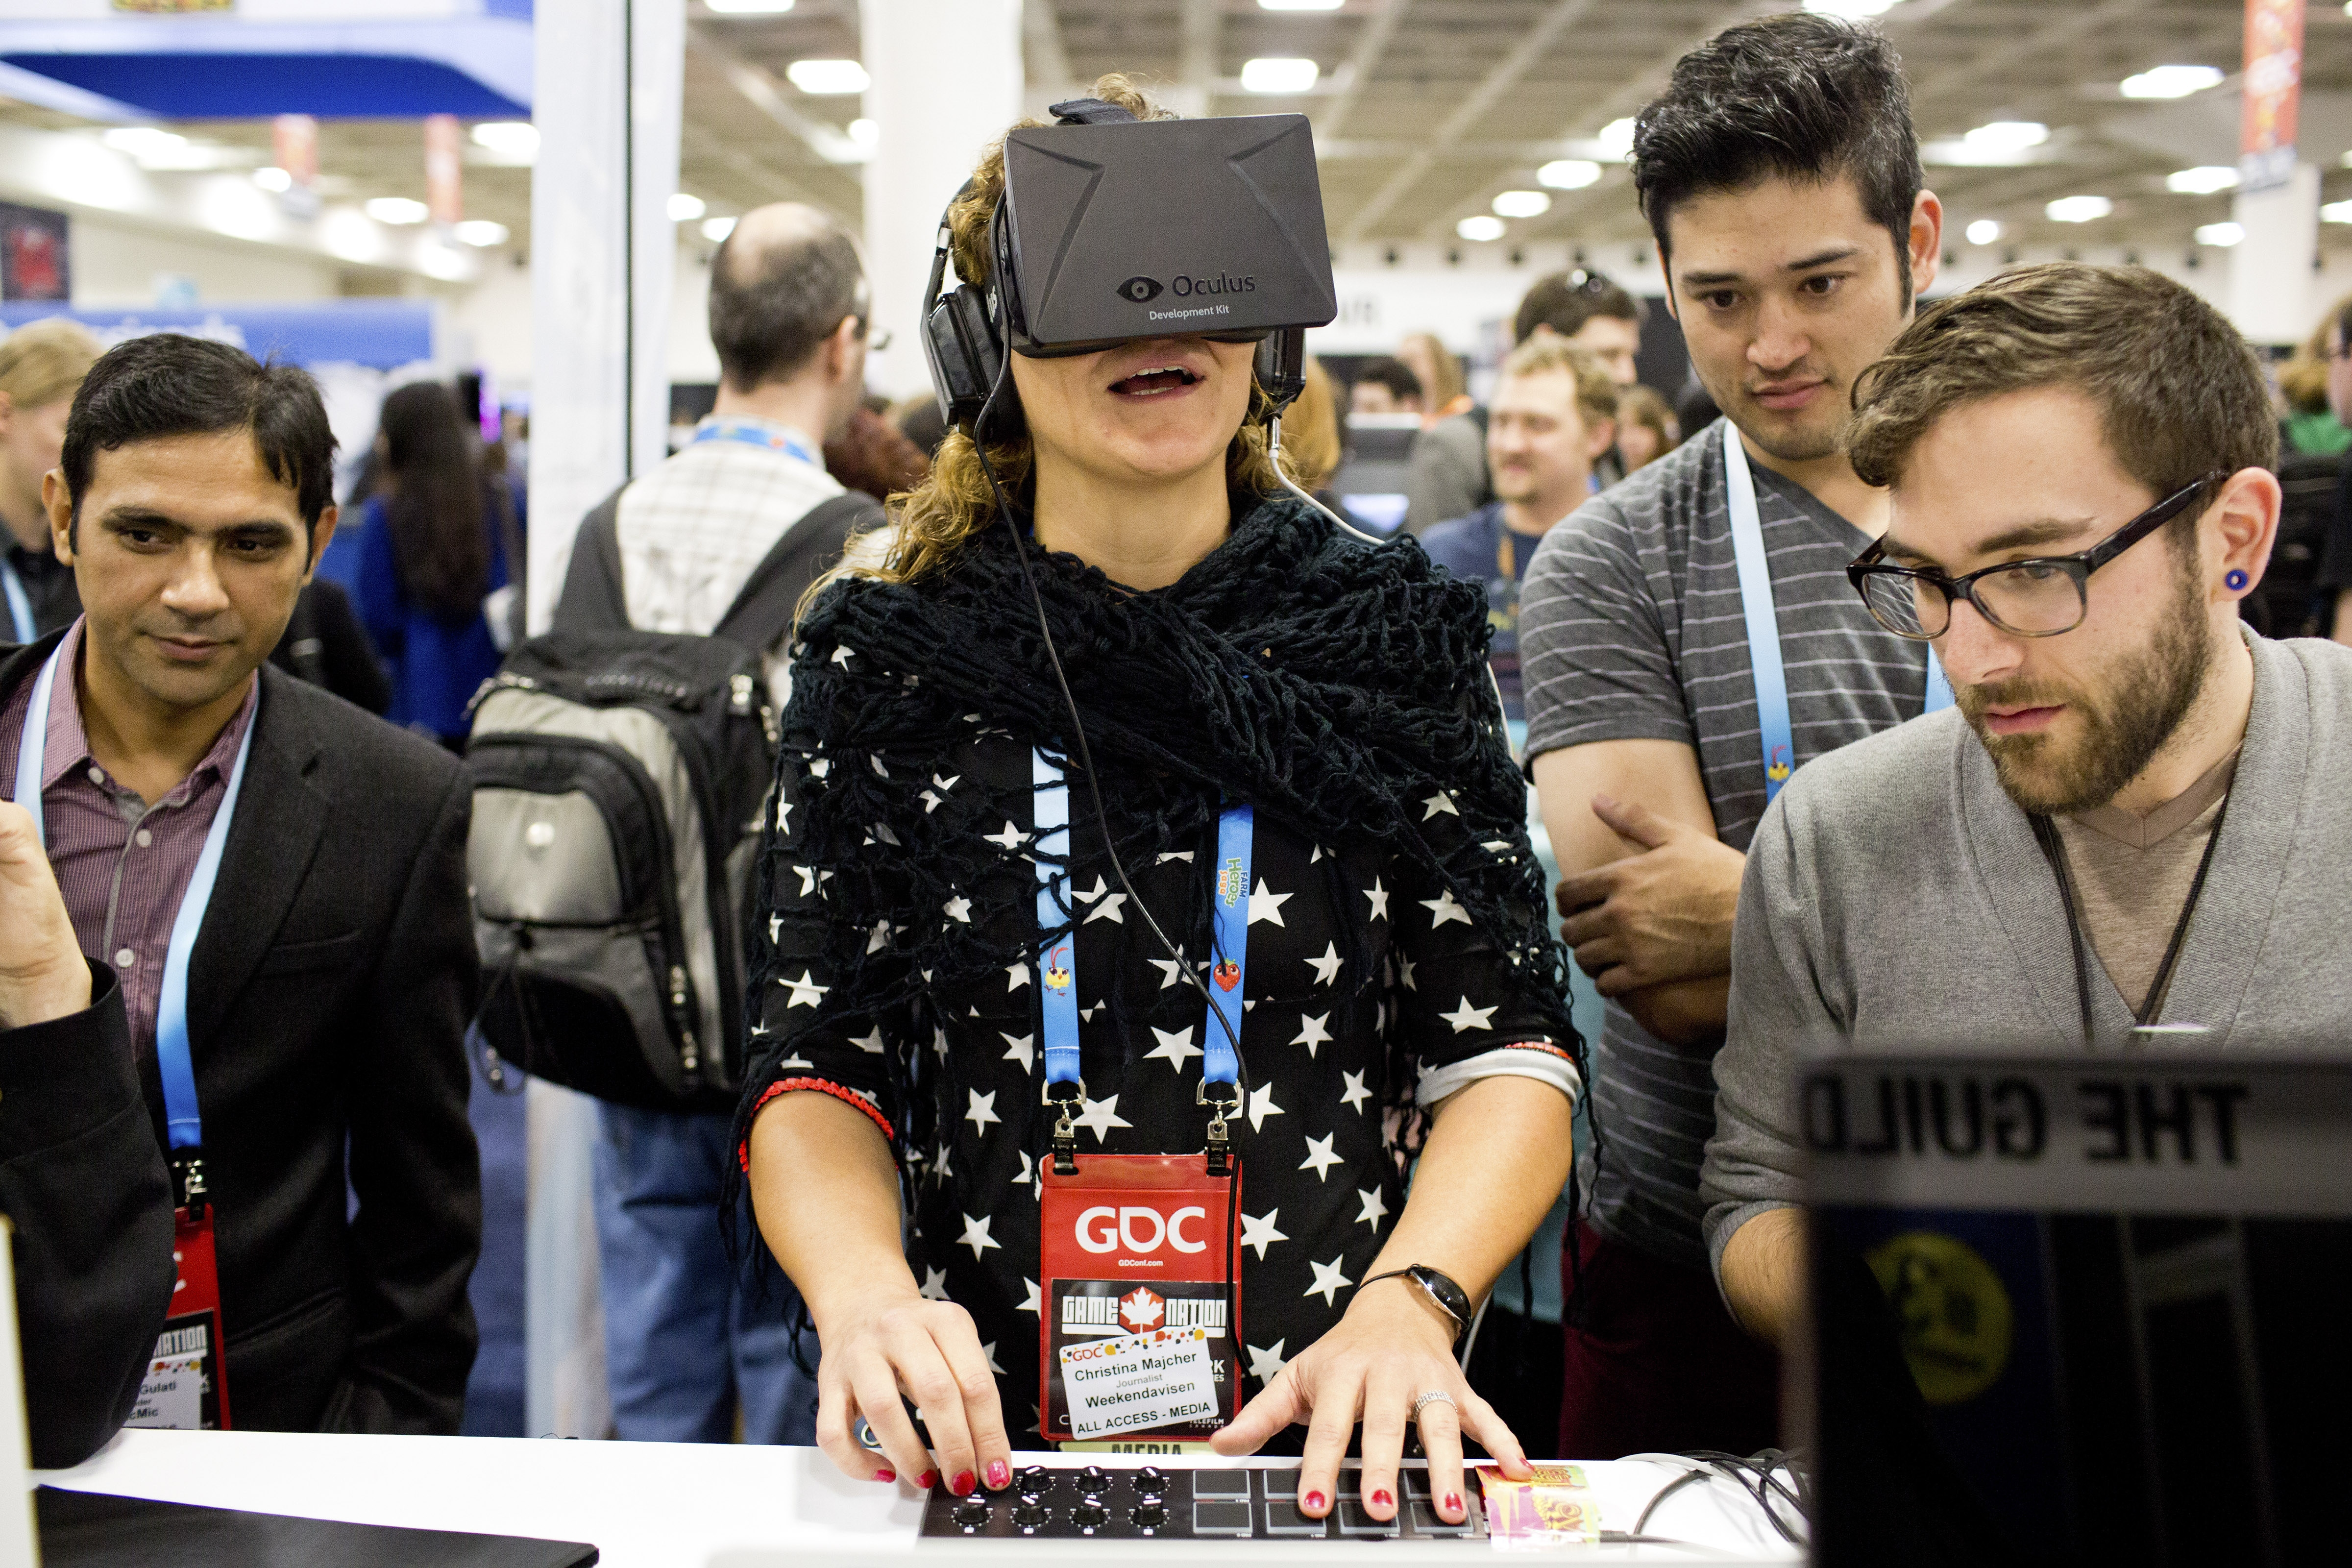 Christina Majcher plays a prototype game using the Oculus VR headset during the Game Developers Conference at the Moscone Center in San Francisco, Calif.